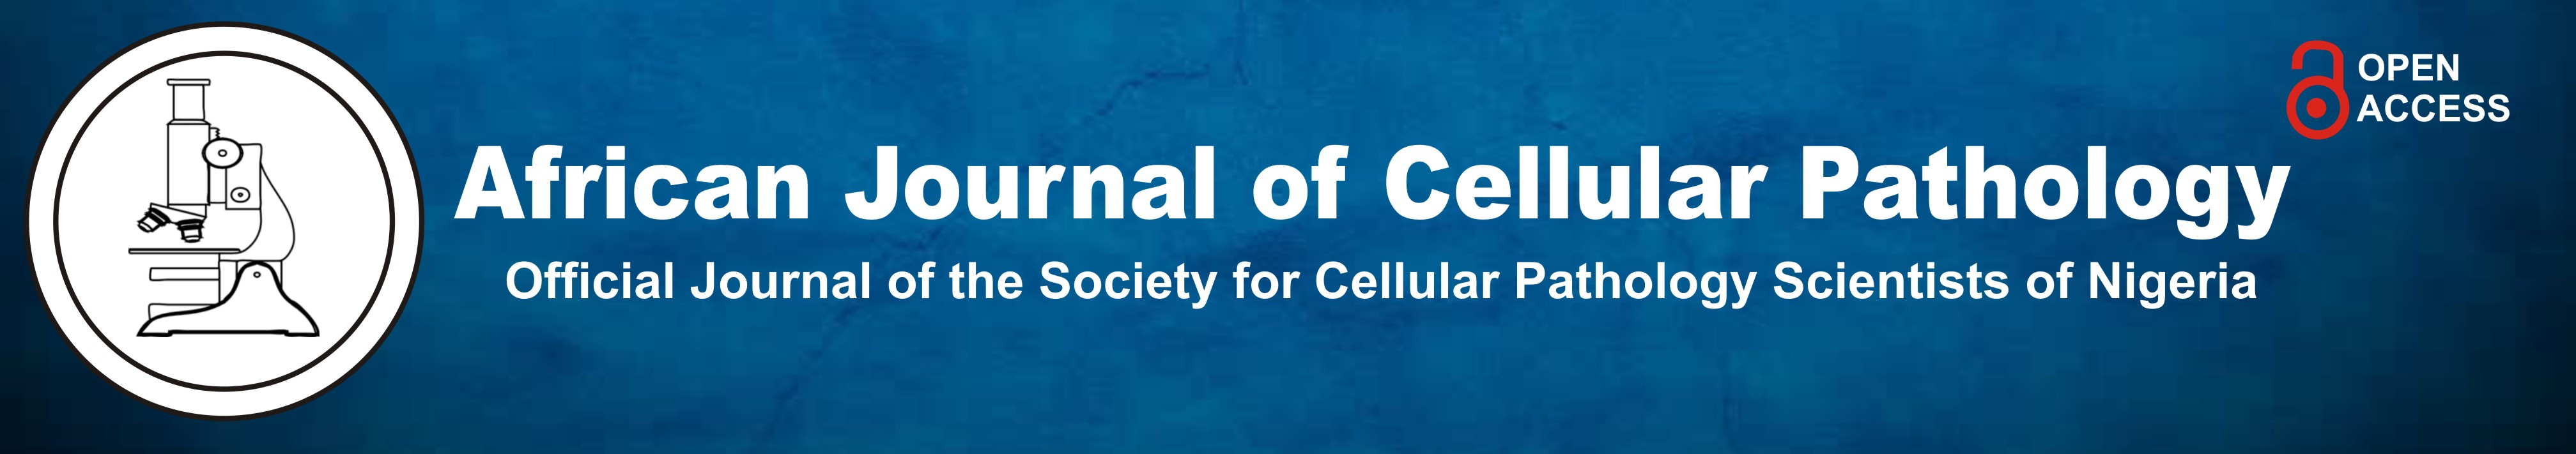 African Journal of Cellular Pathology